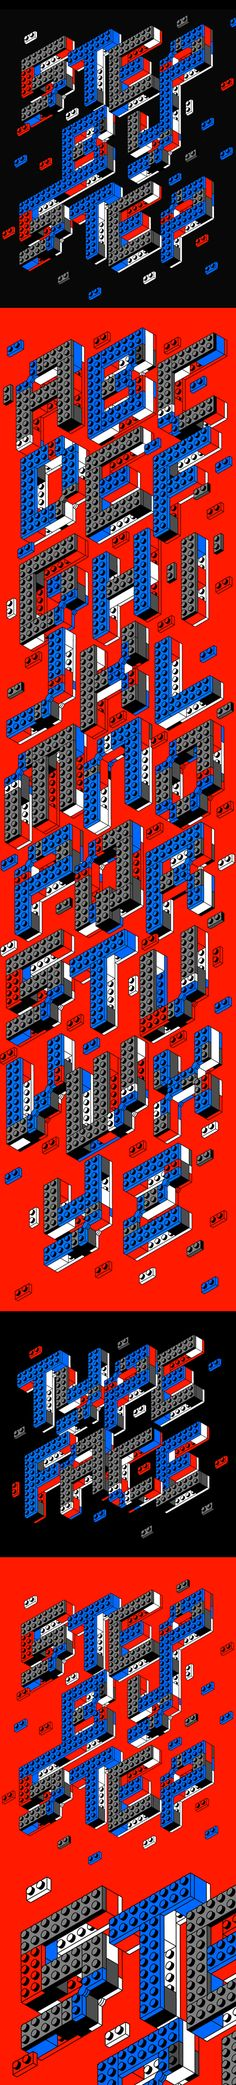 STEP BY STEP TYPEFACE by SHORT , via Behance    use of lego/toys  keep in mind for photographic project